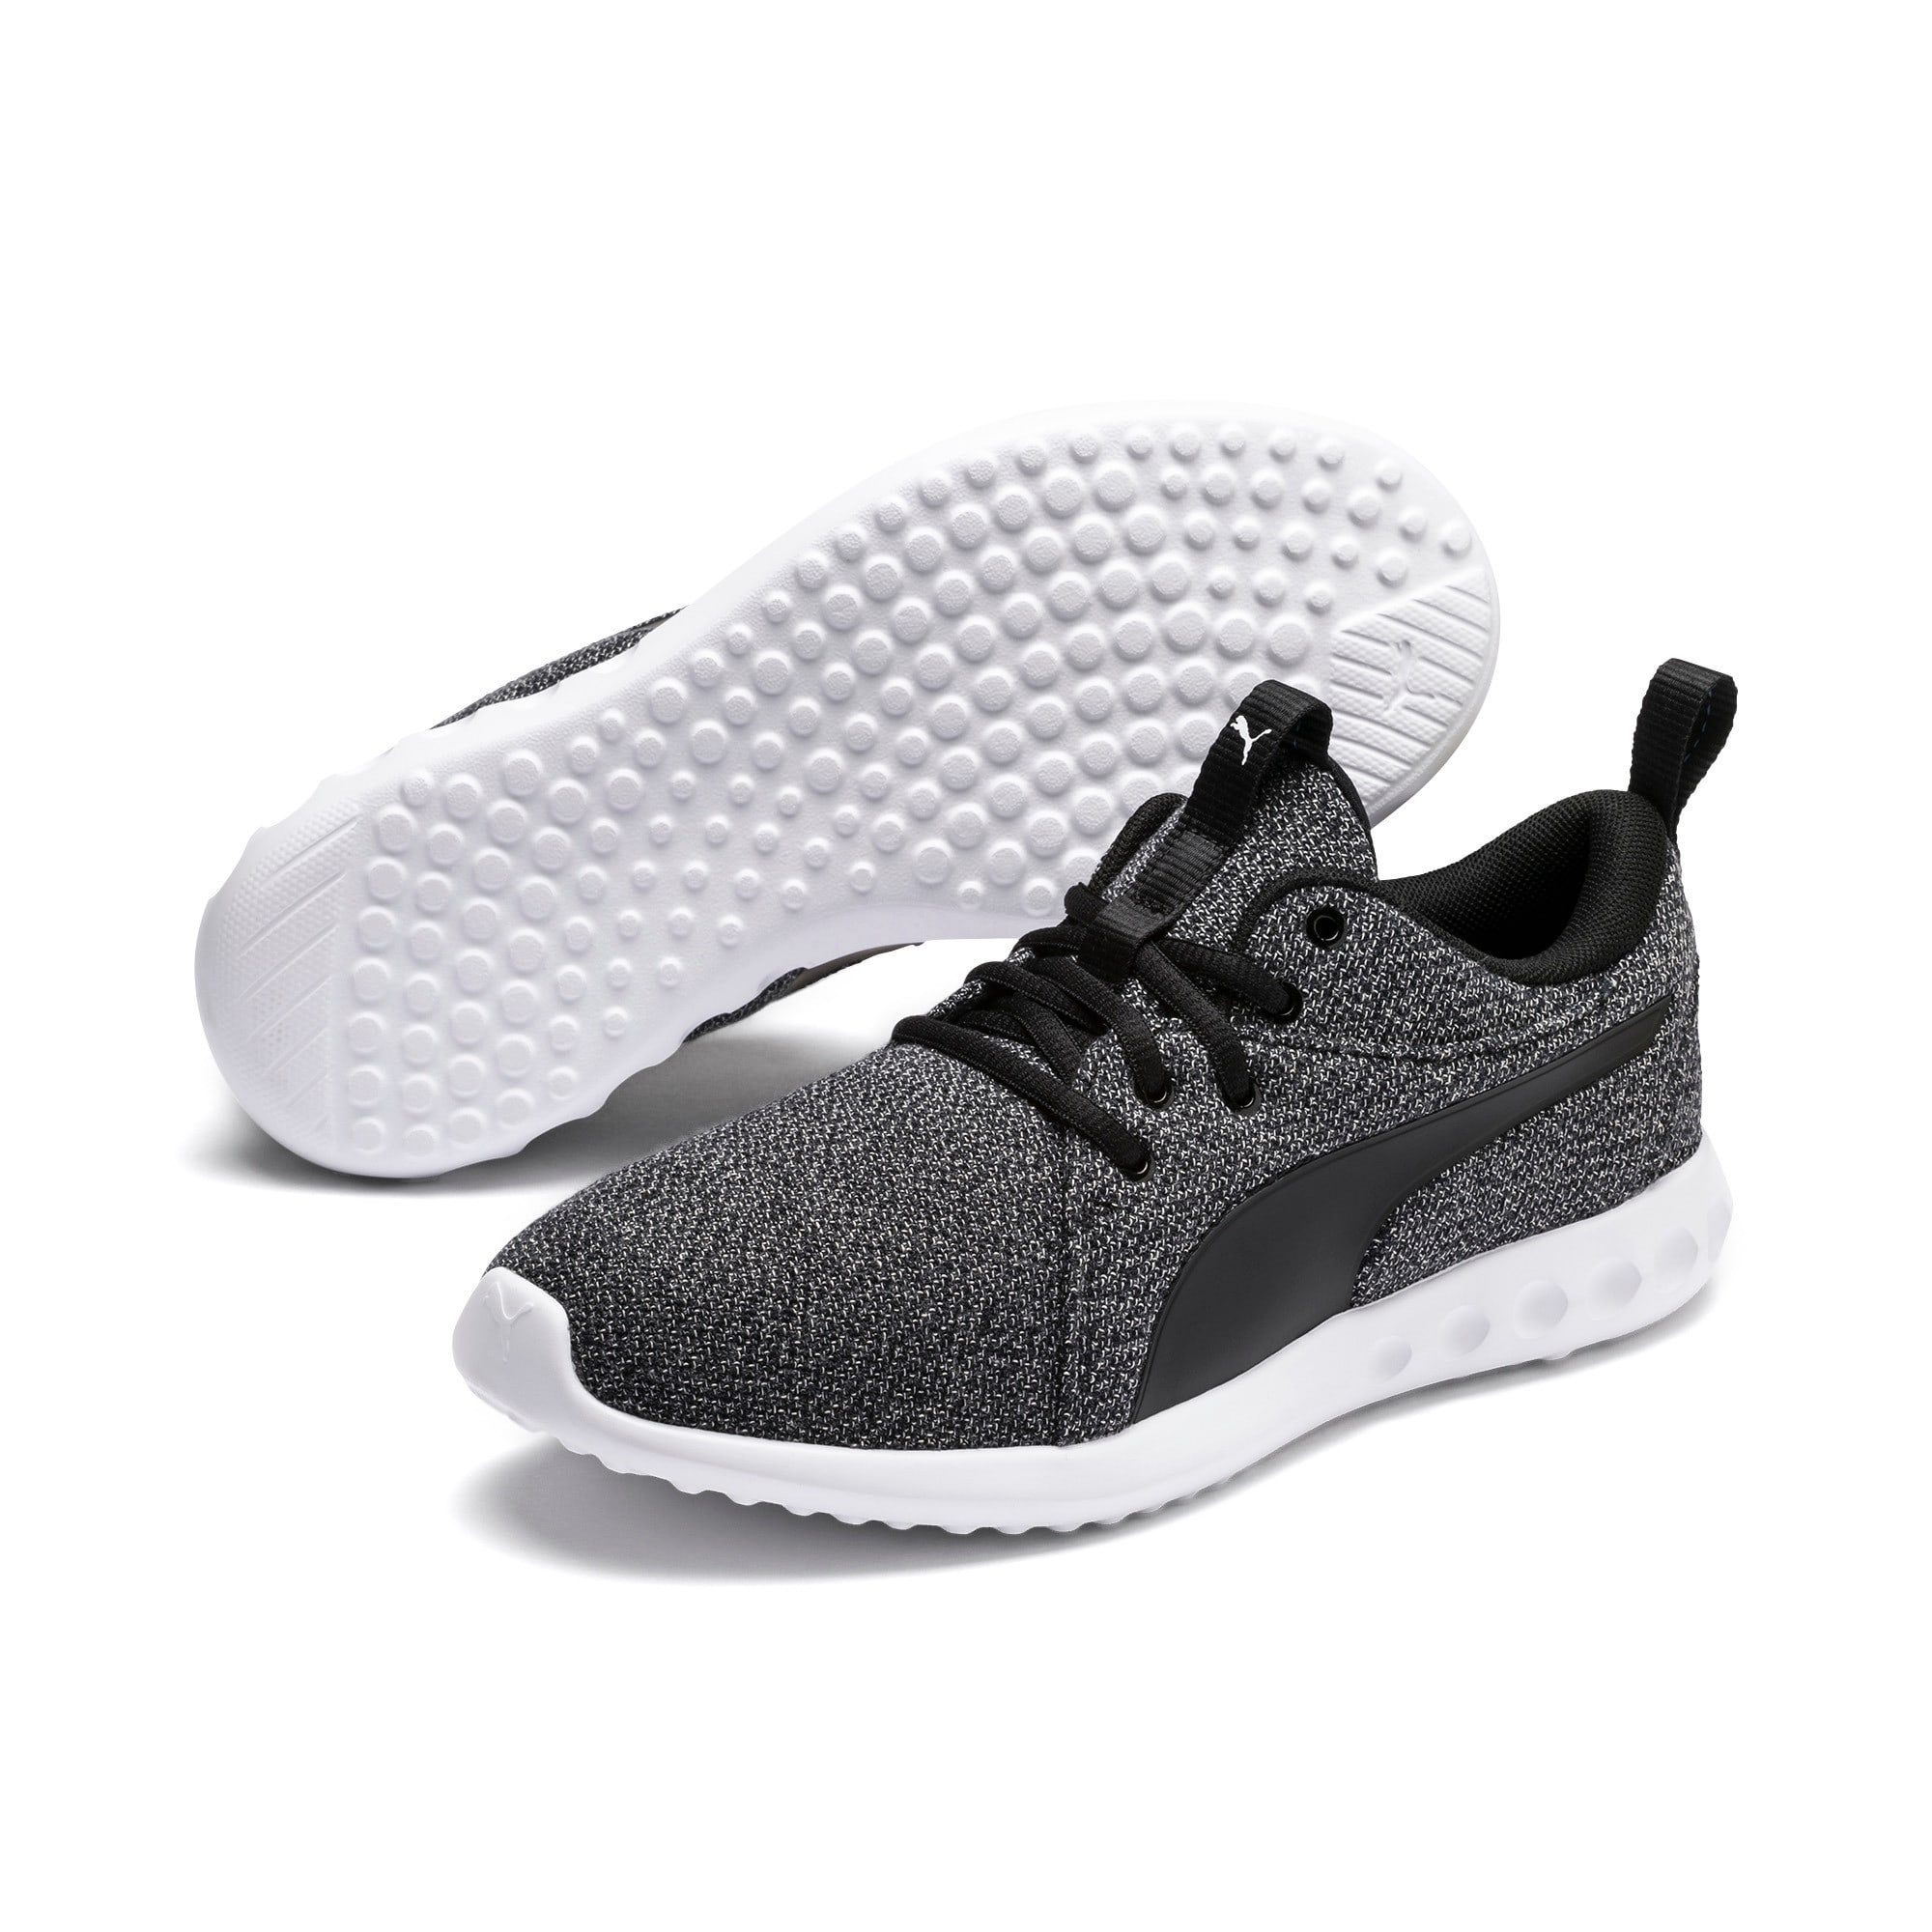 Thumbnail 2 of Carson 2 Knit Women's Trainers, Puma Black-Puma White, medium